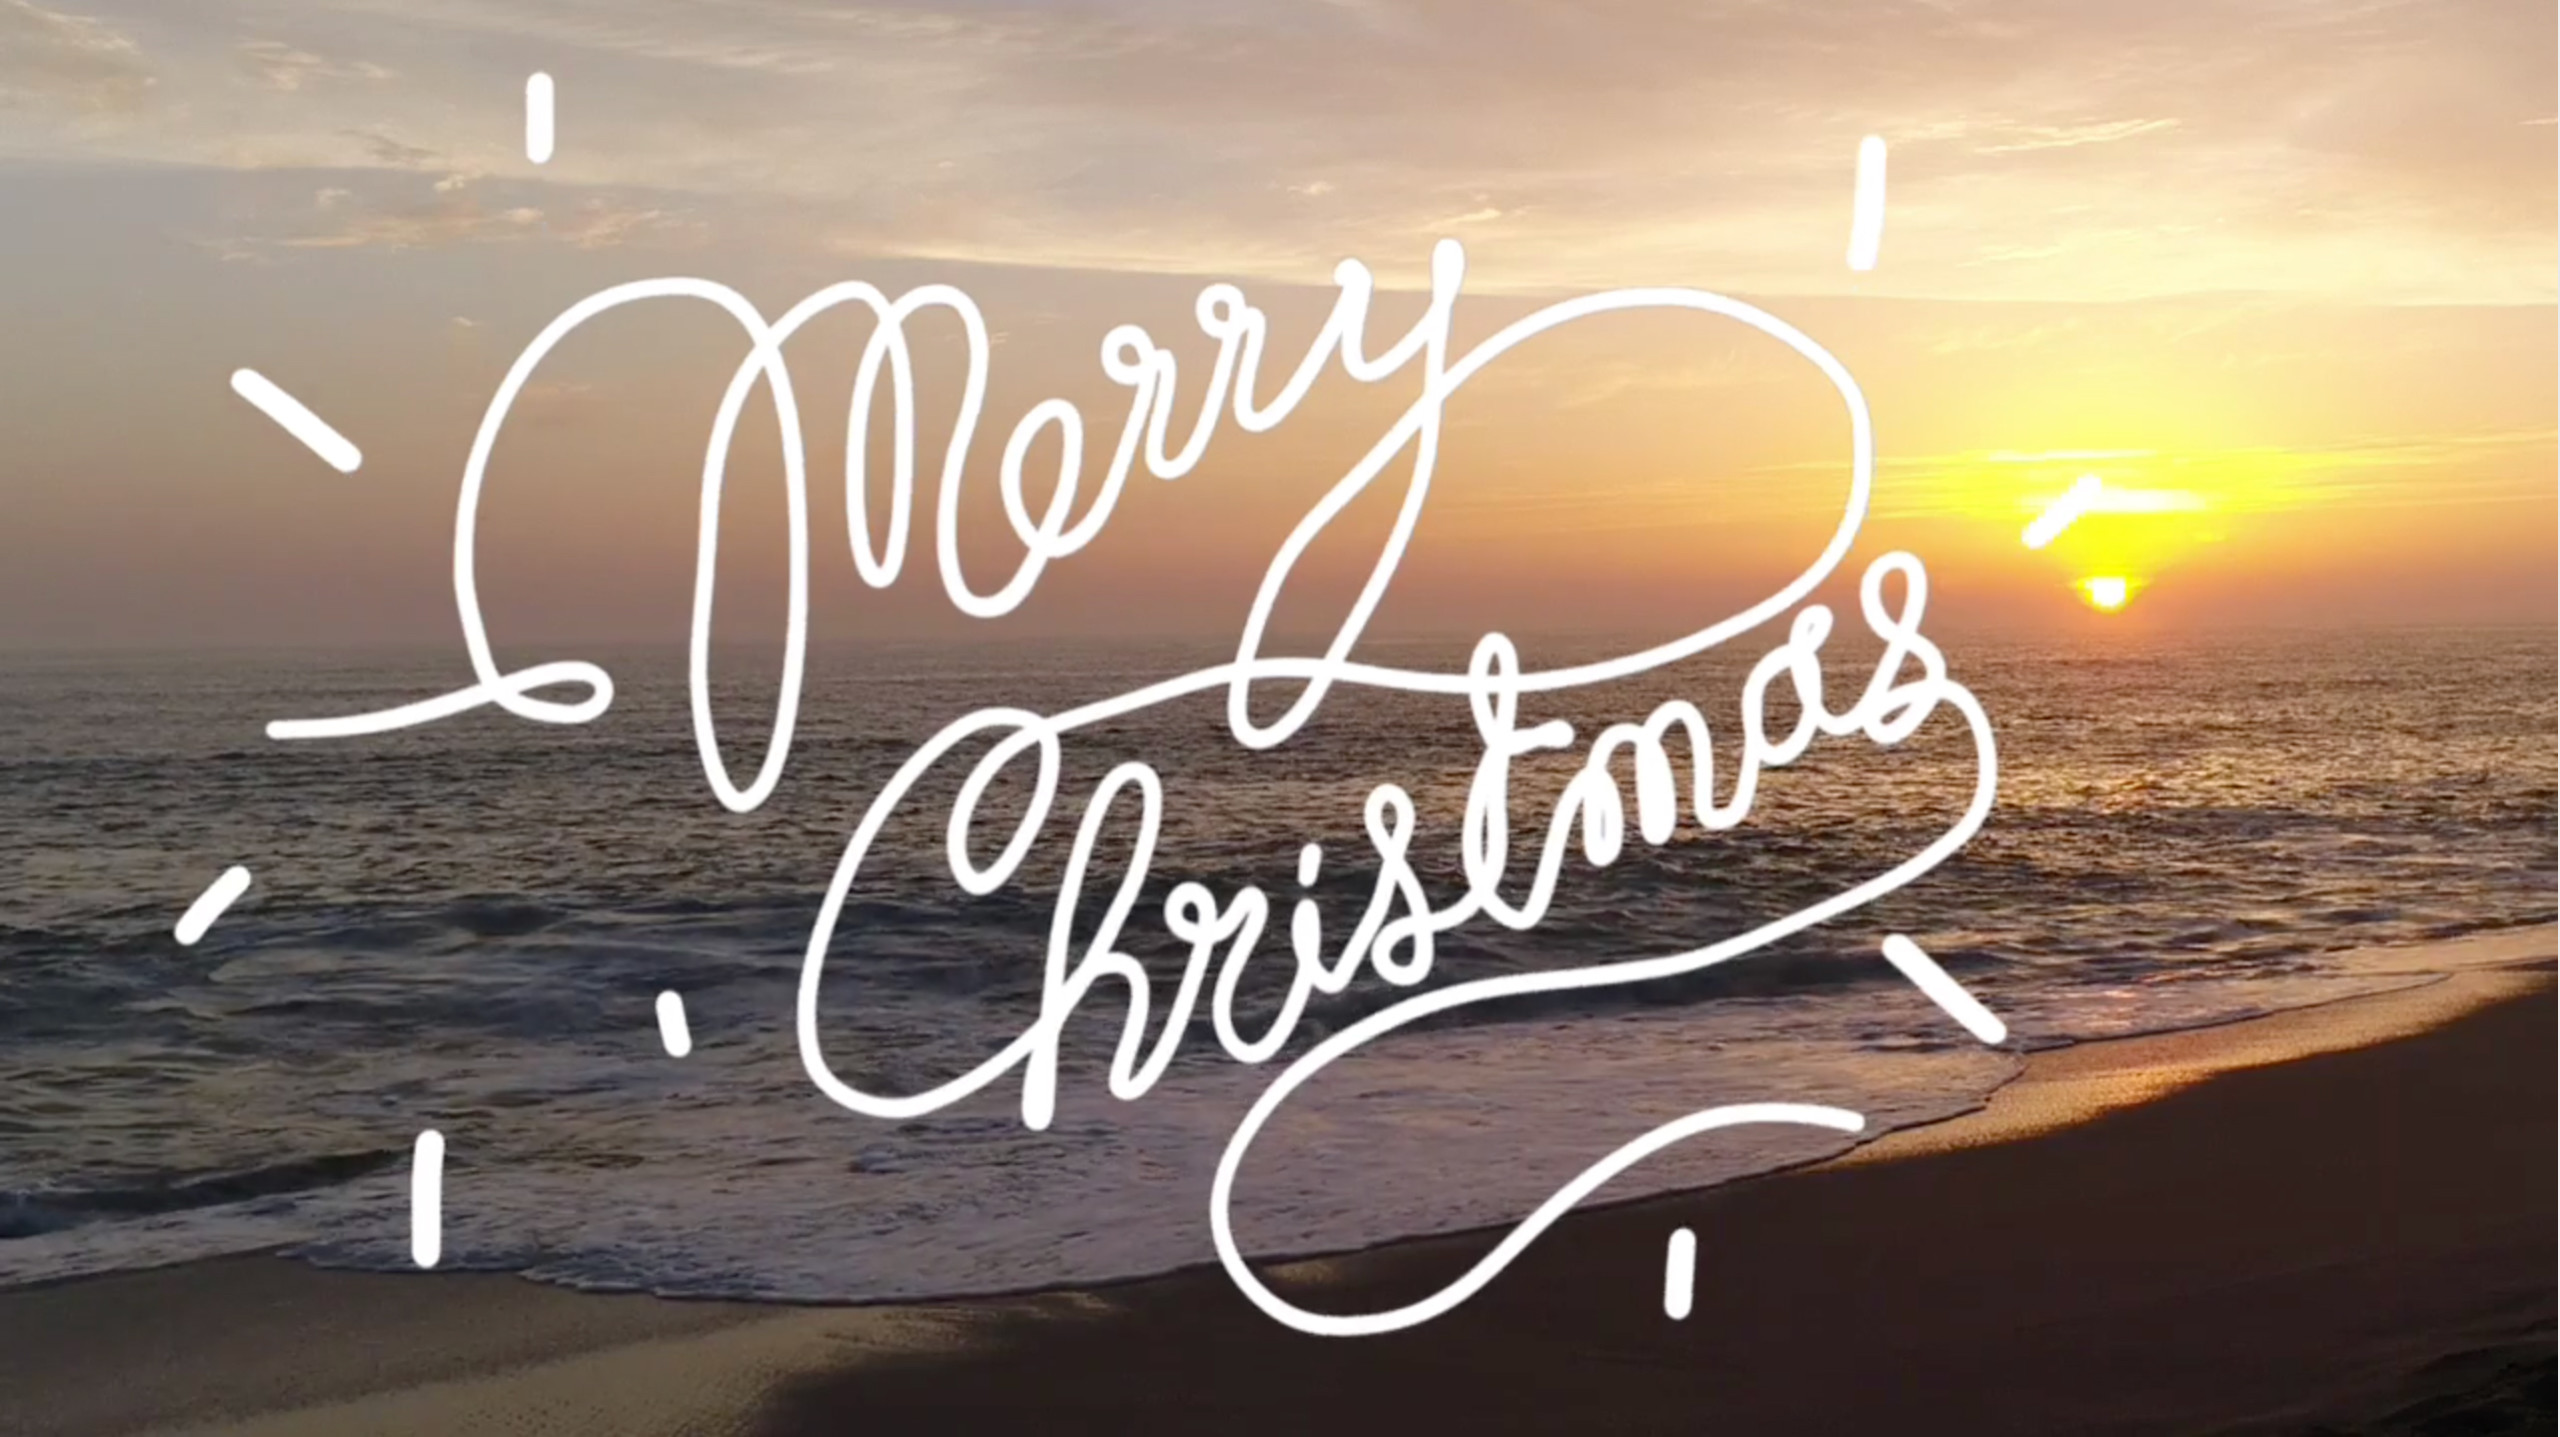 Merry Christmas Wishes | Quenzel Marketing Agency - Fort Myers, Florida